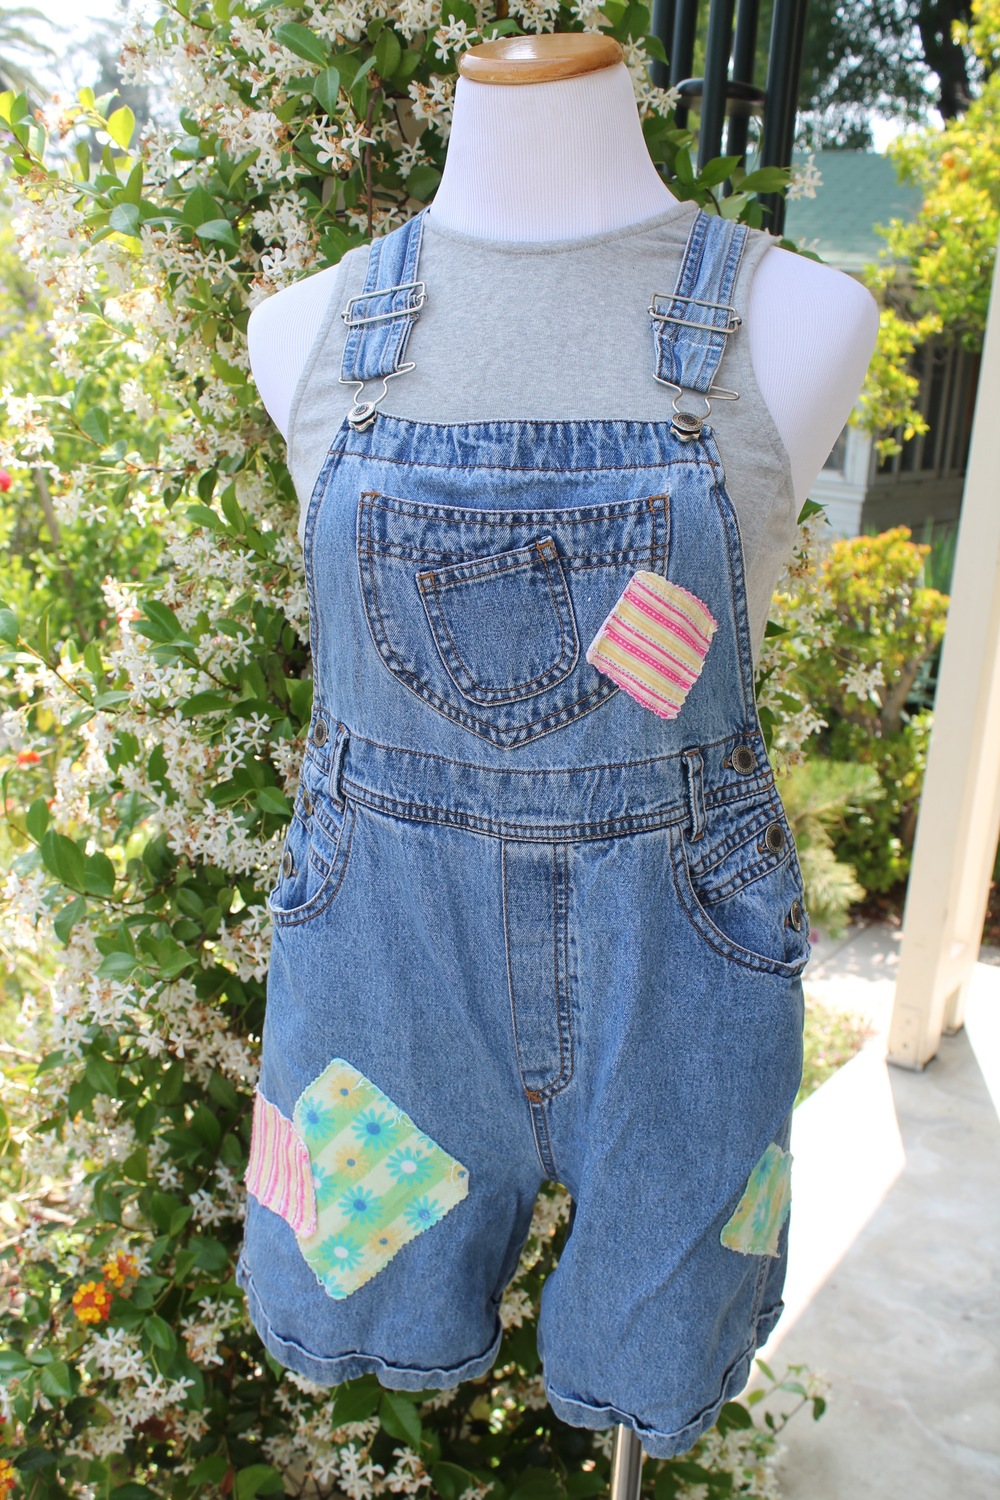 As If 90s Patchwork Short Overalls with Lace up Back Detail US$35.00